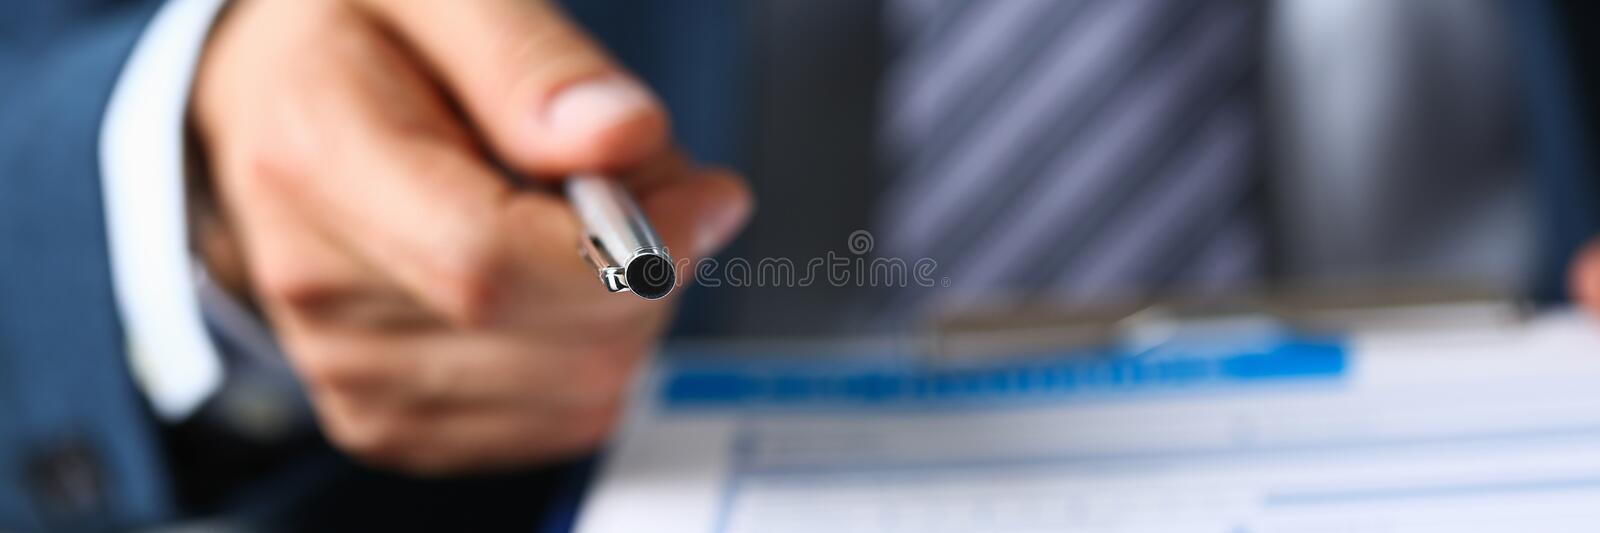 Male arm in suit offer contract form on stock image